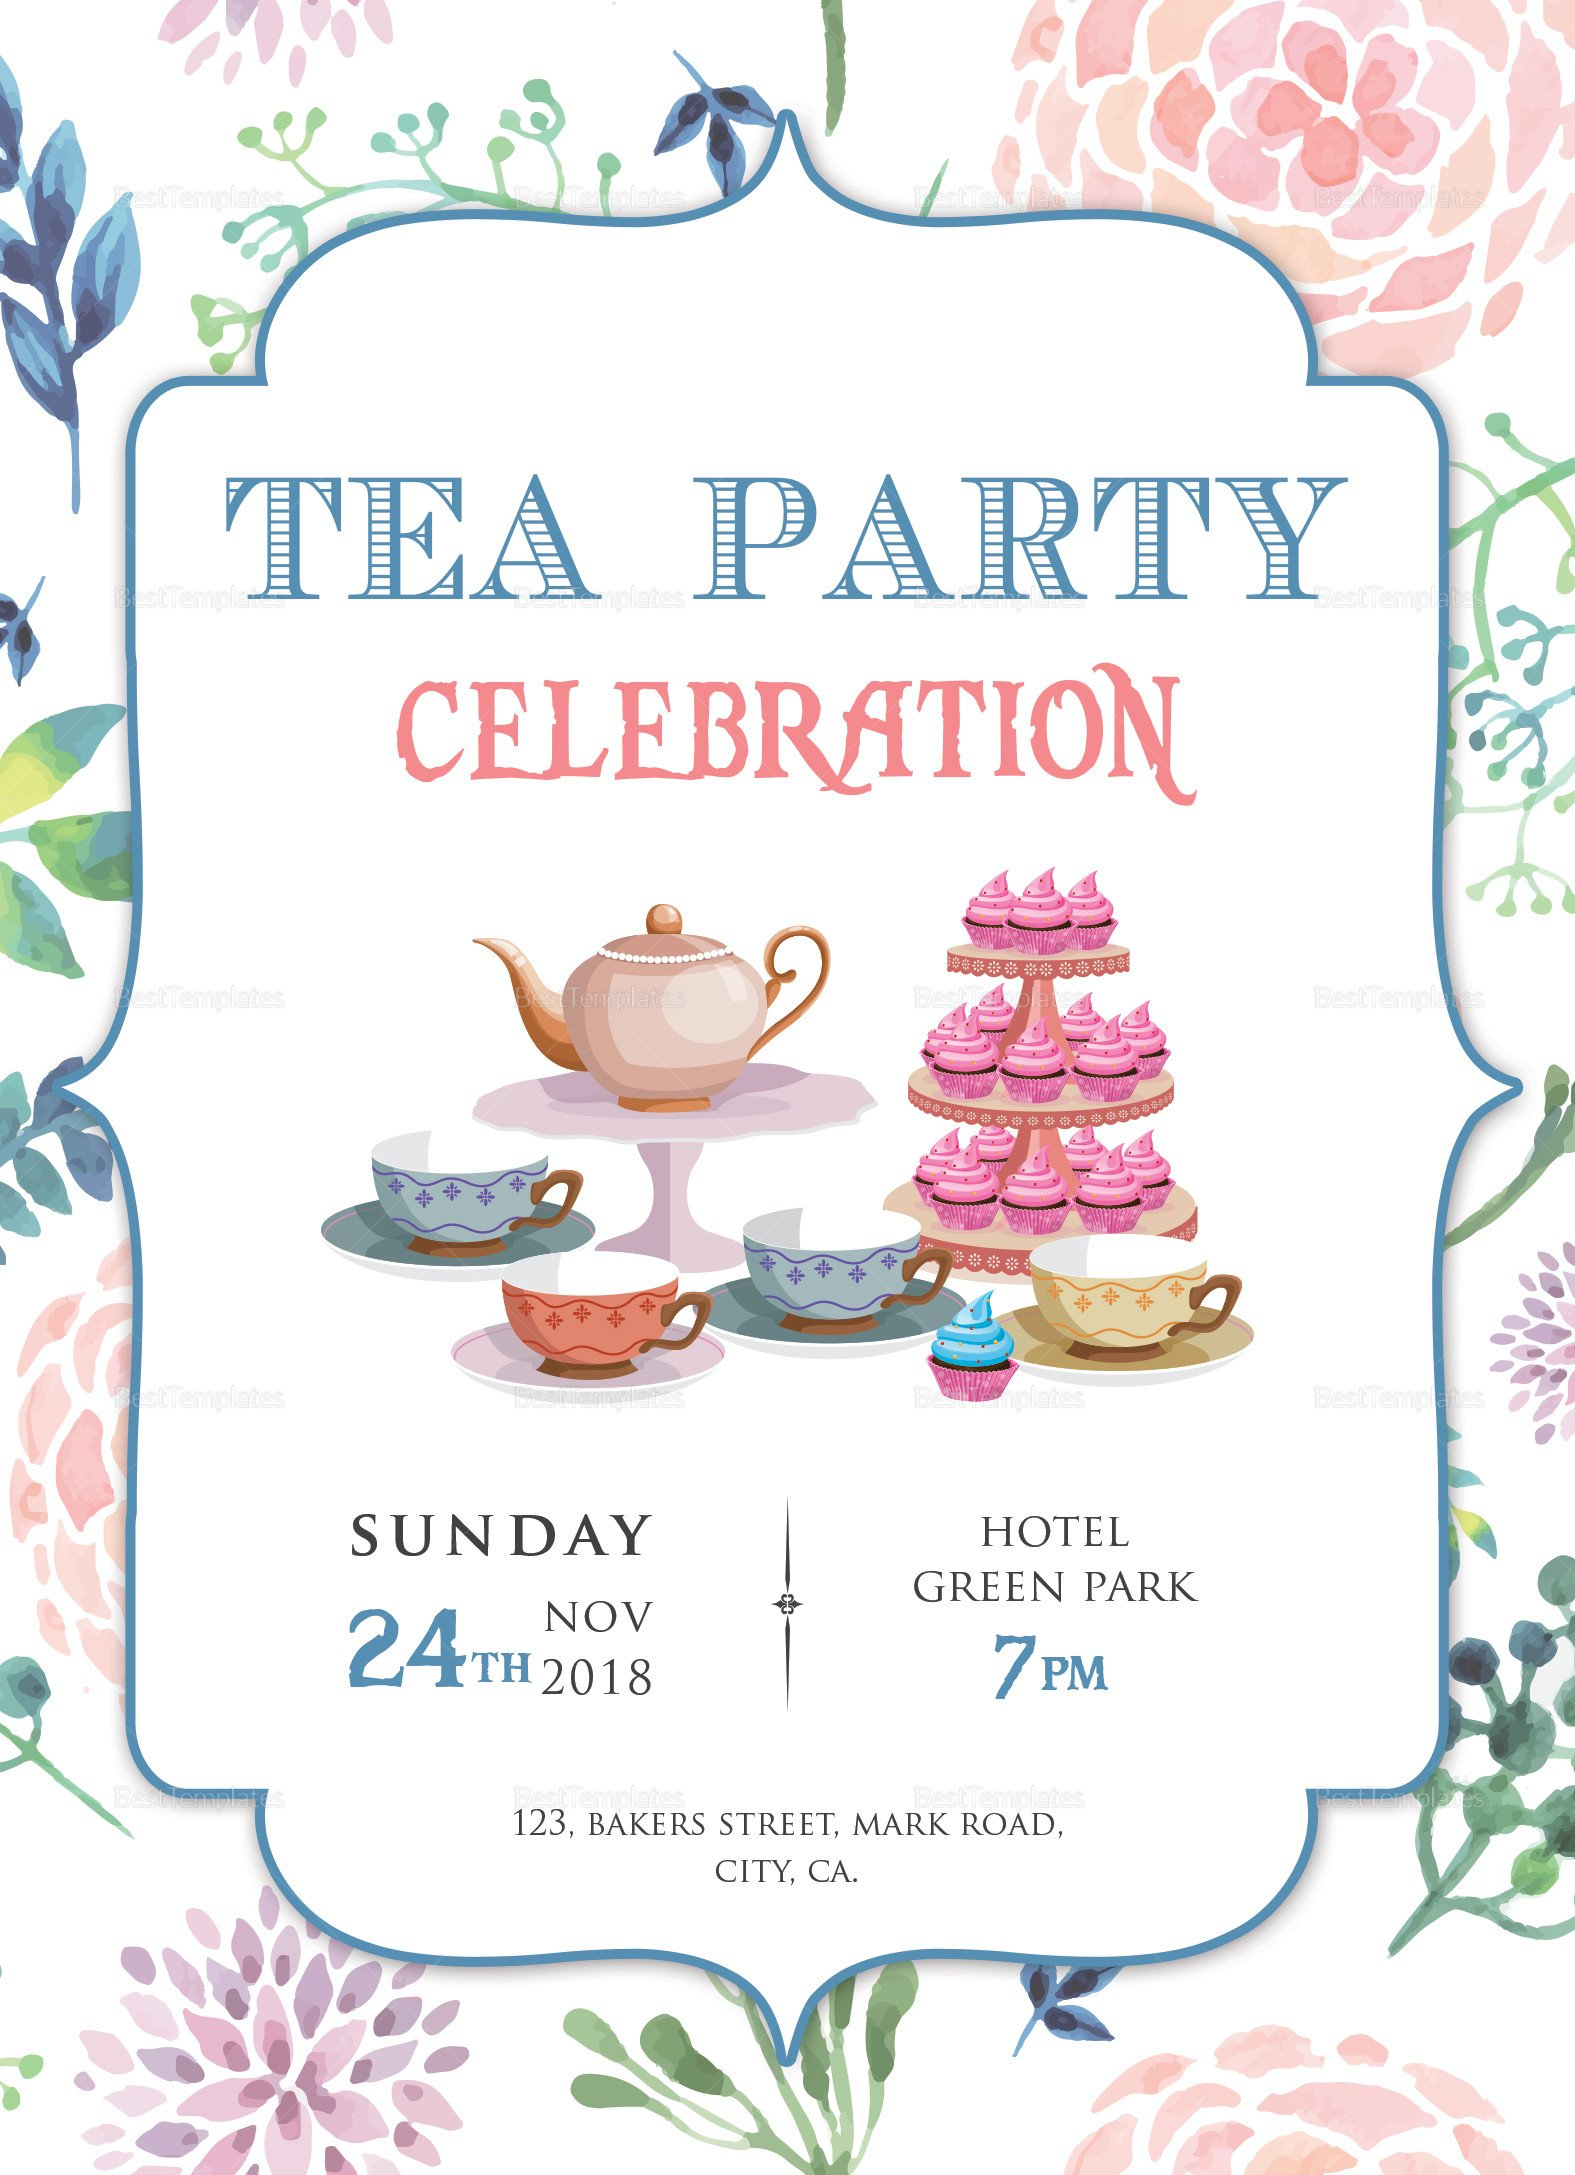 Tea Party Invitation Template Elegant Tea Party Invitation Design Template In Word Psd